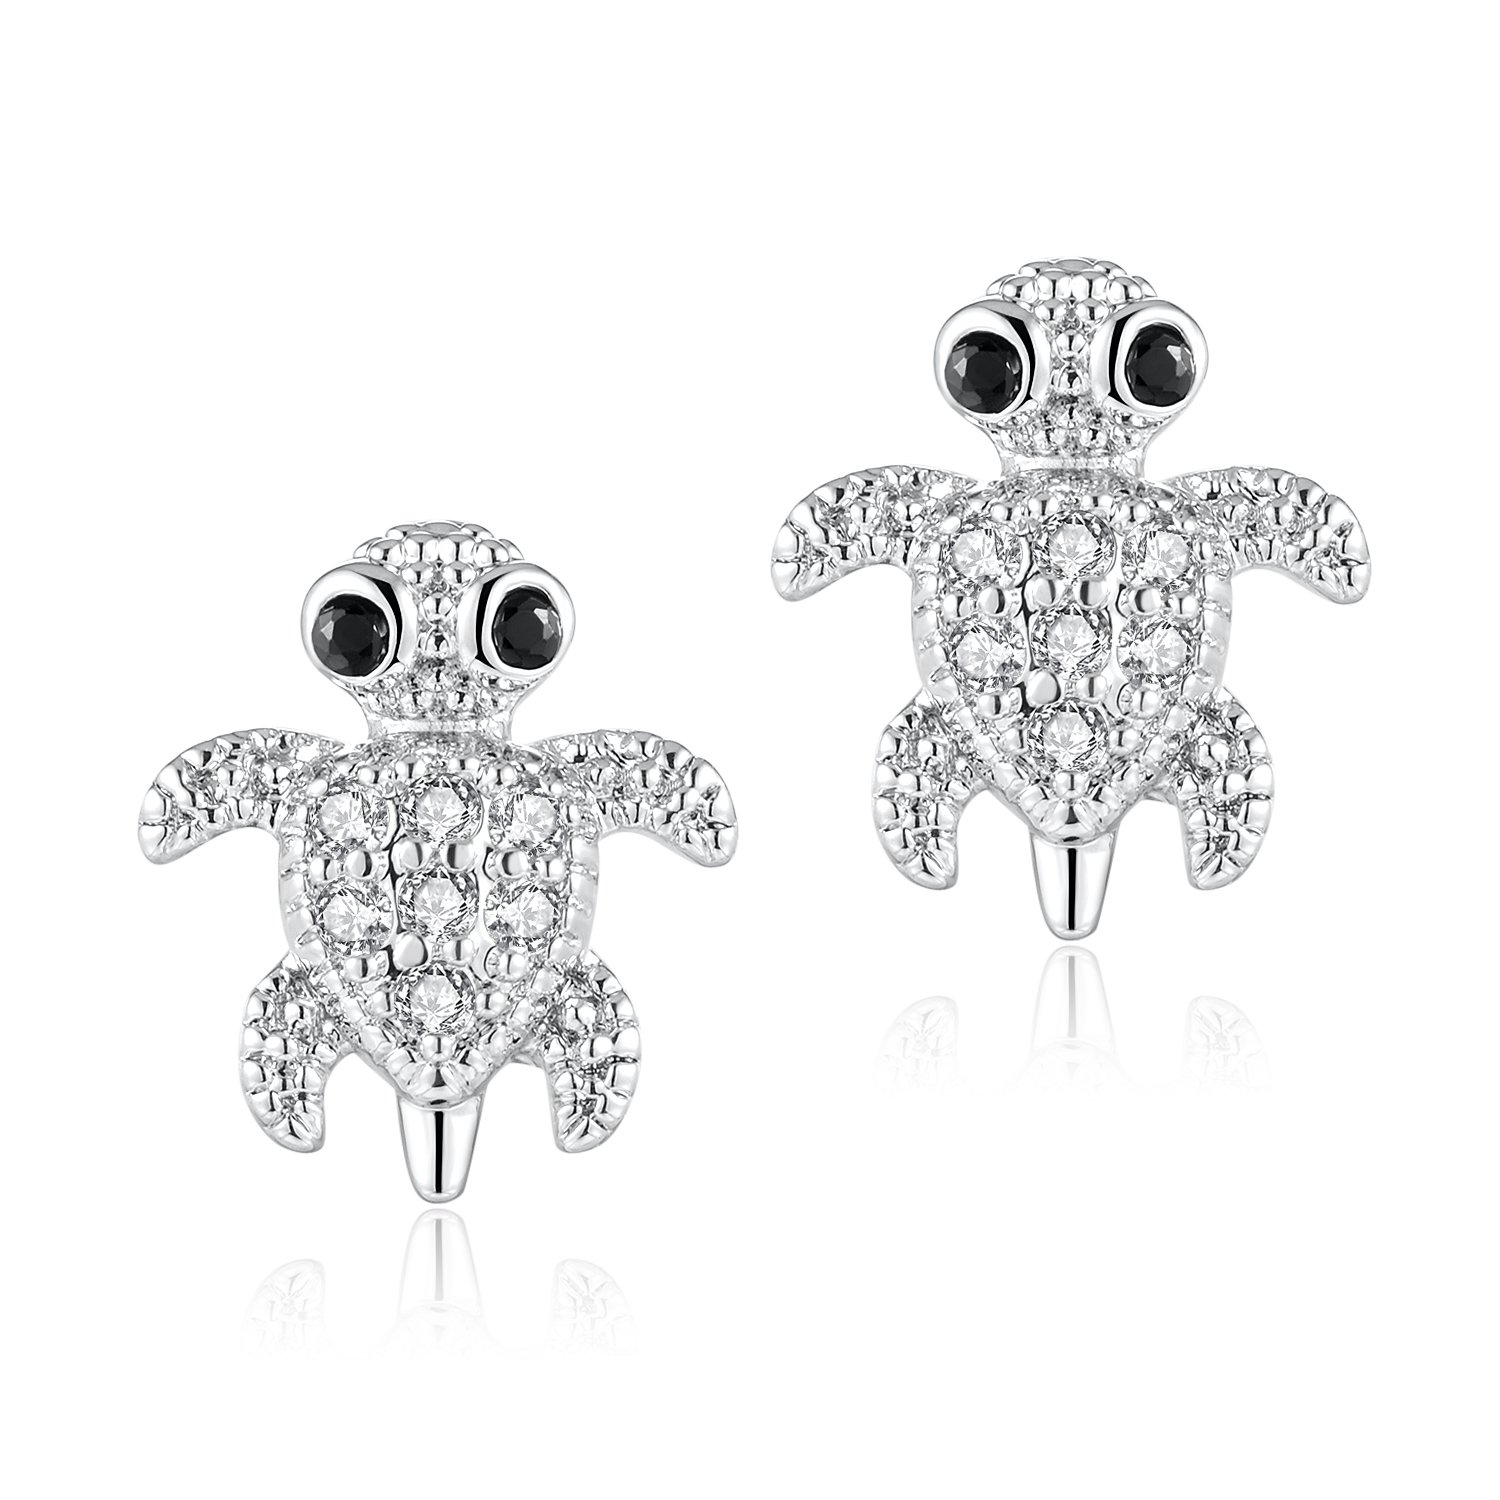 Candyfancy 2 Pieces 16g / 18g Surgical Steel Sea Turtle Ear Cartilage Helix Studs Earrings Auricle Piercings (16G Bar 1.2mm Thick)